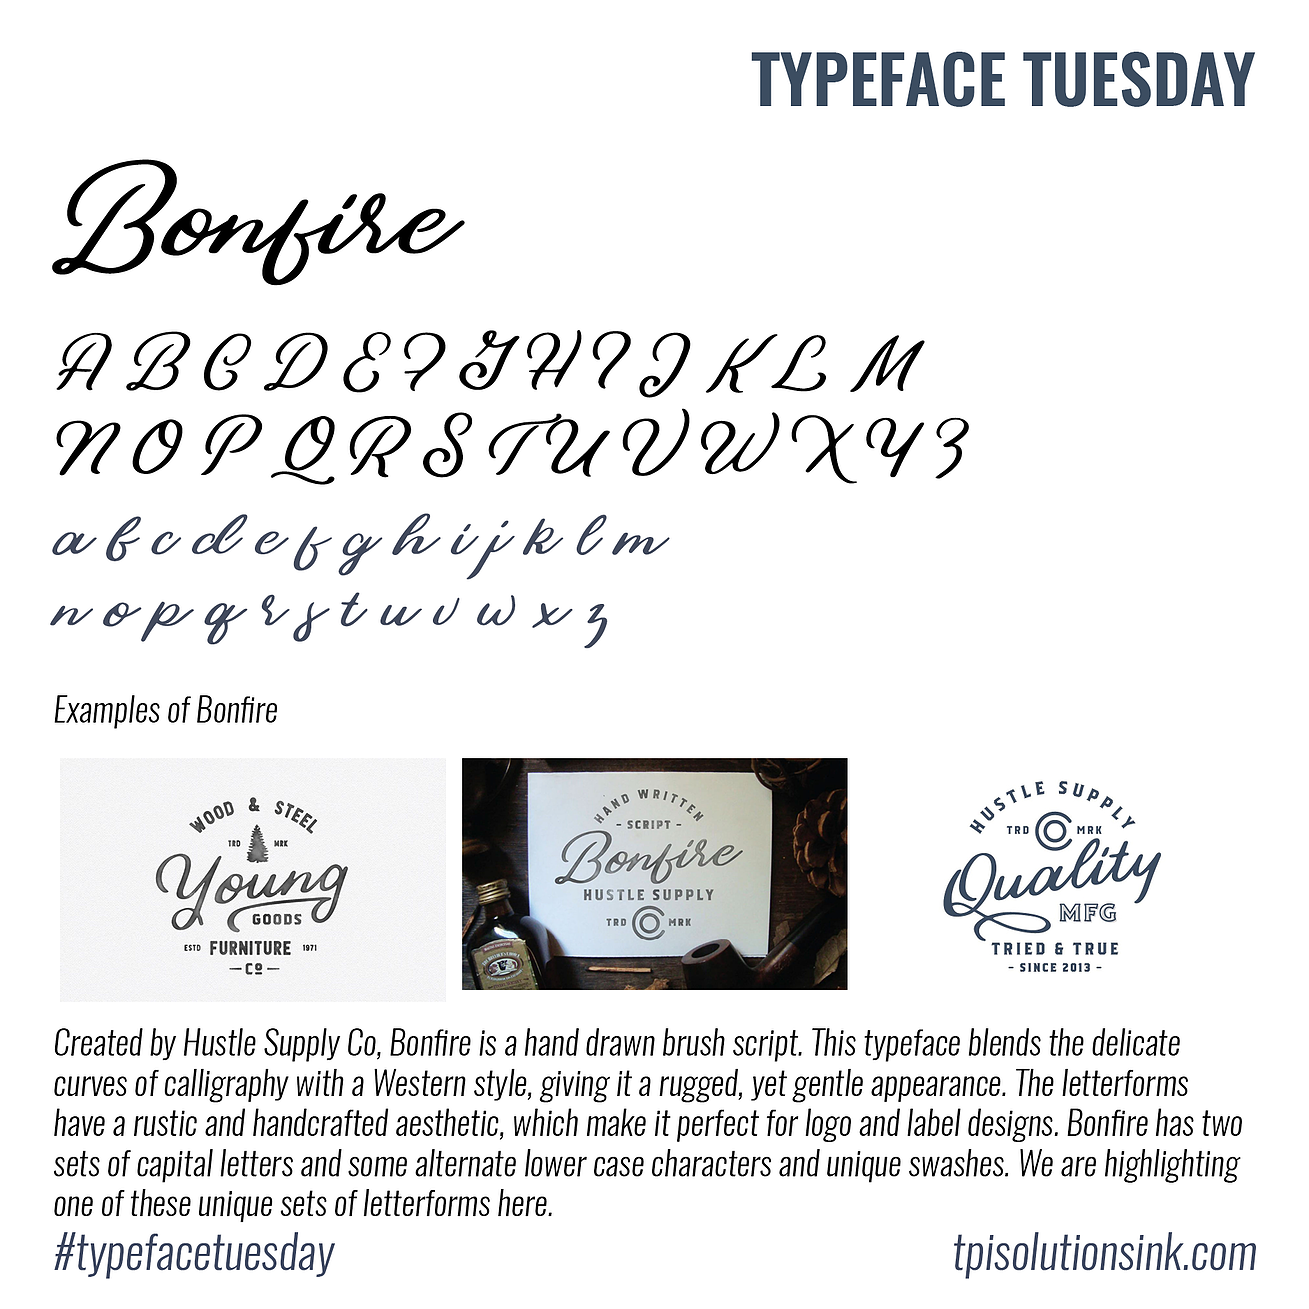 Typeface Tuesday – Bonfire